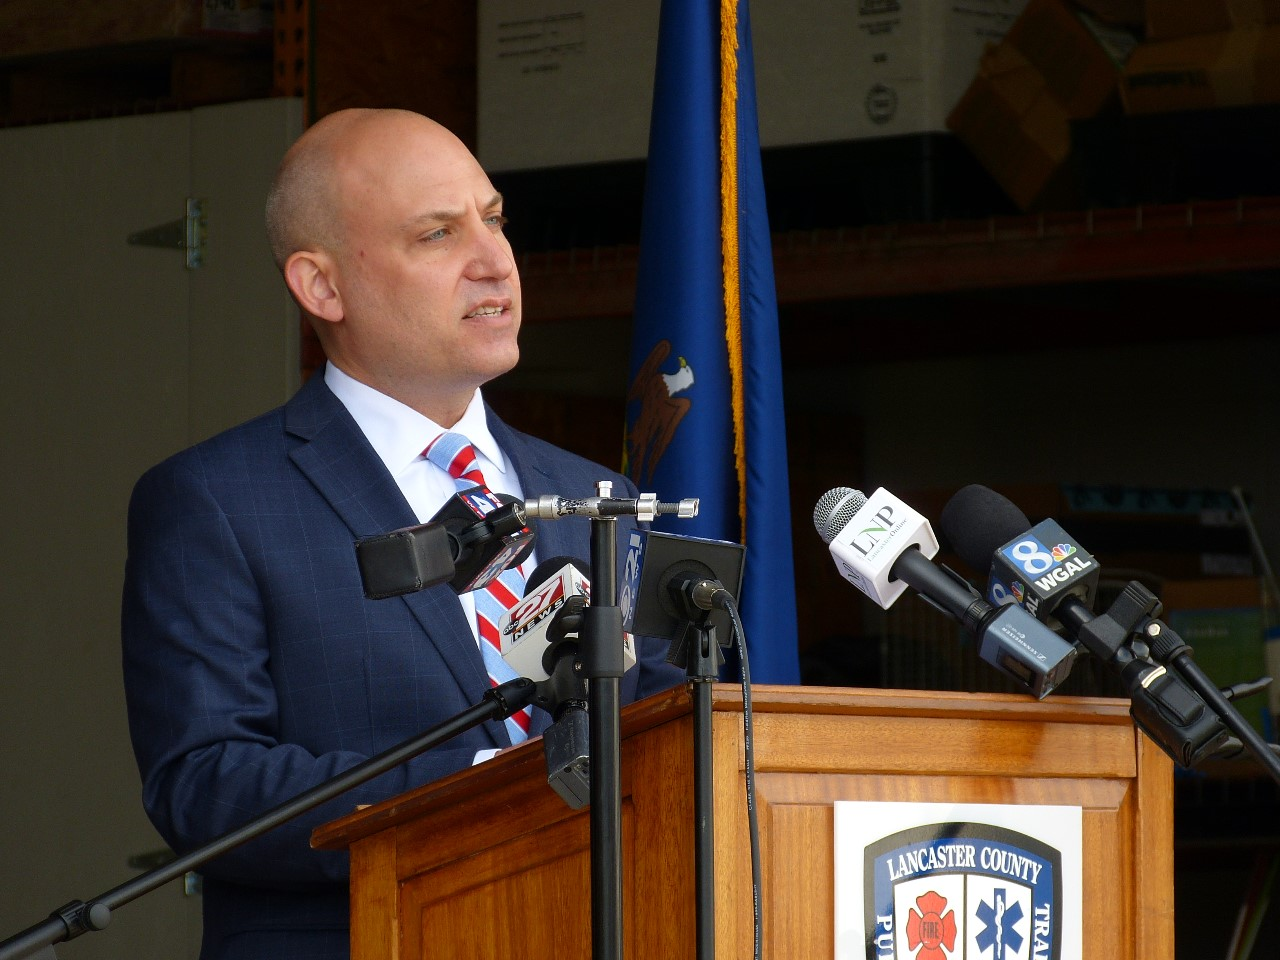 Dr. Michael Ripchinski, chief clinical officer for Penn Medicine Lancaster General Health, speaks at a news conference at the Lancaster County Public Safety Training Center on Tuesday, May 5, 2020.  (Photo: Tim Stuhldreher)